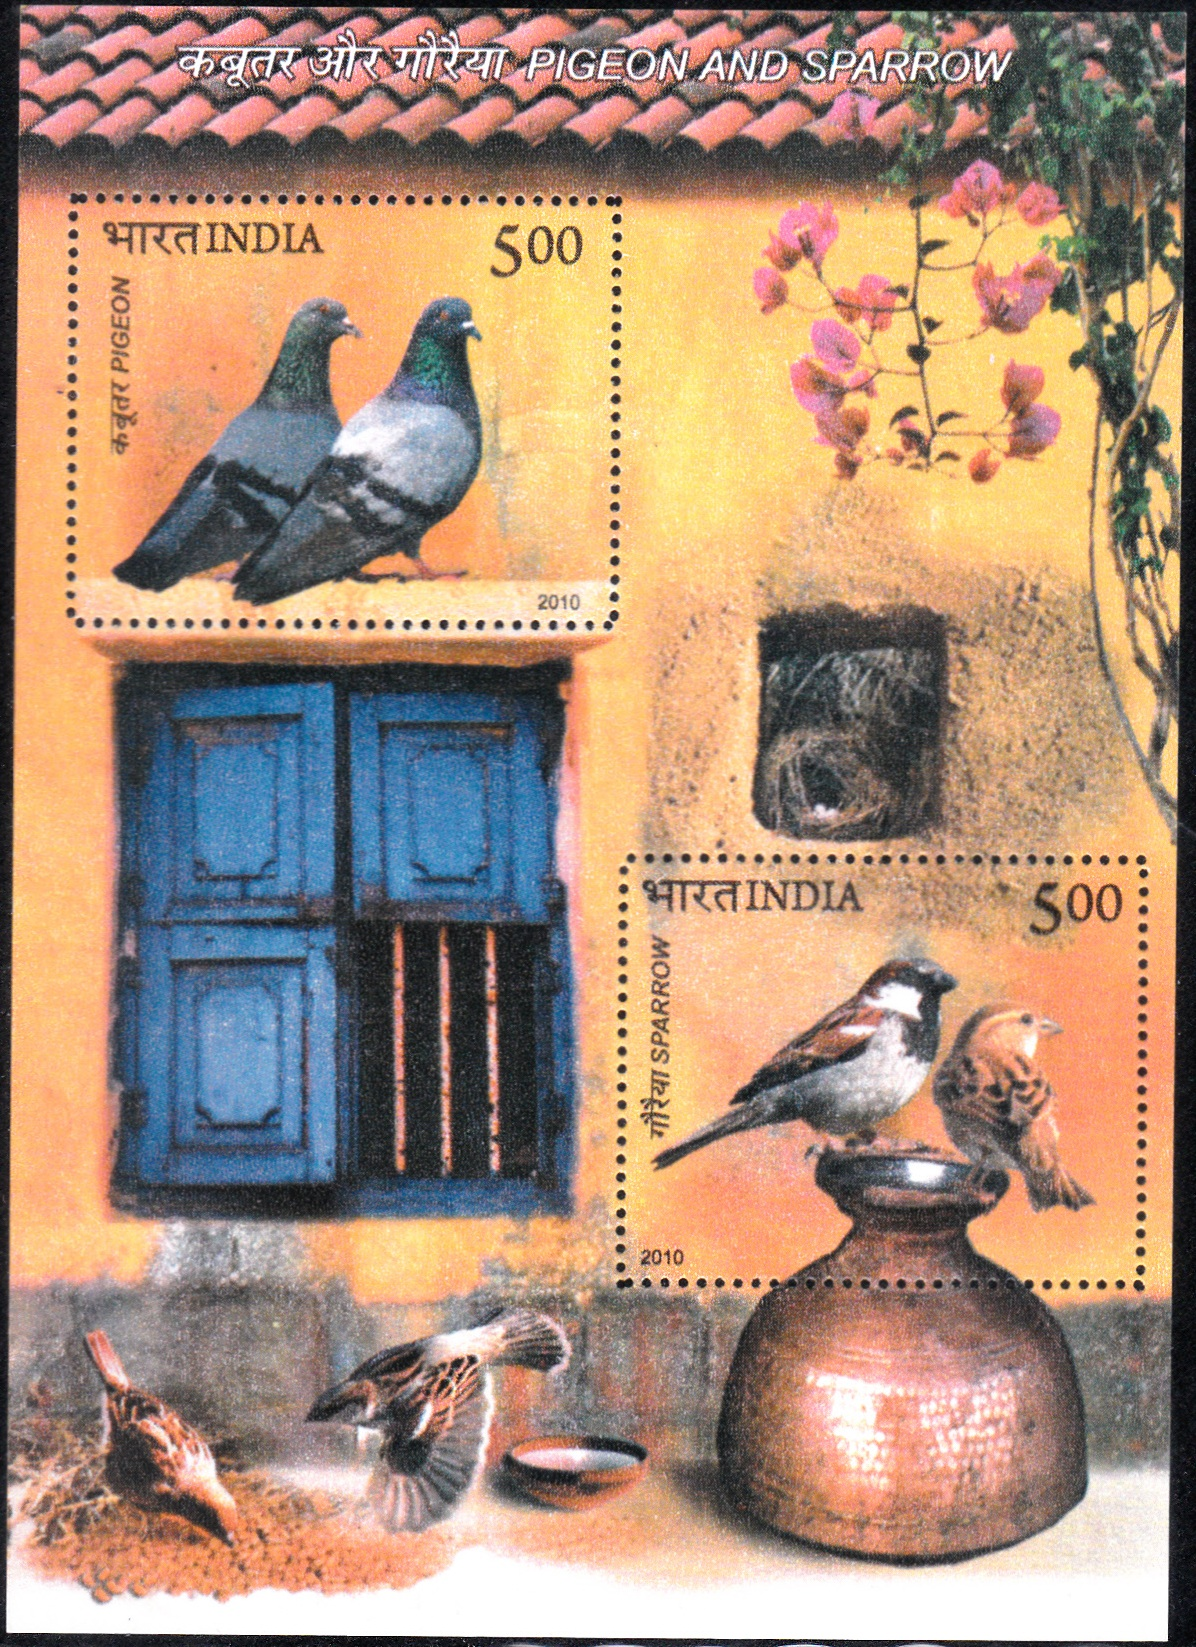 2615 Pigeon and Sparrow [Miniature Sheet]